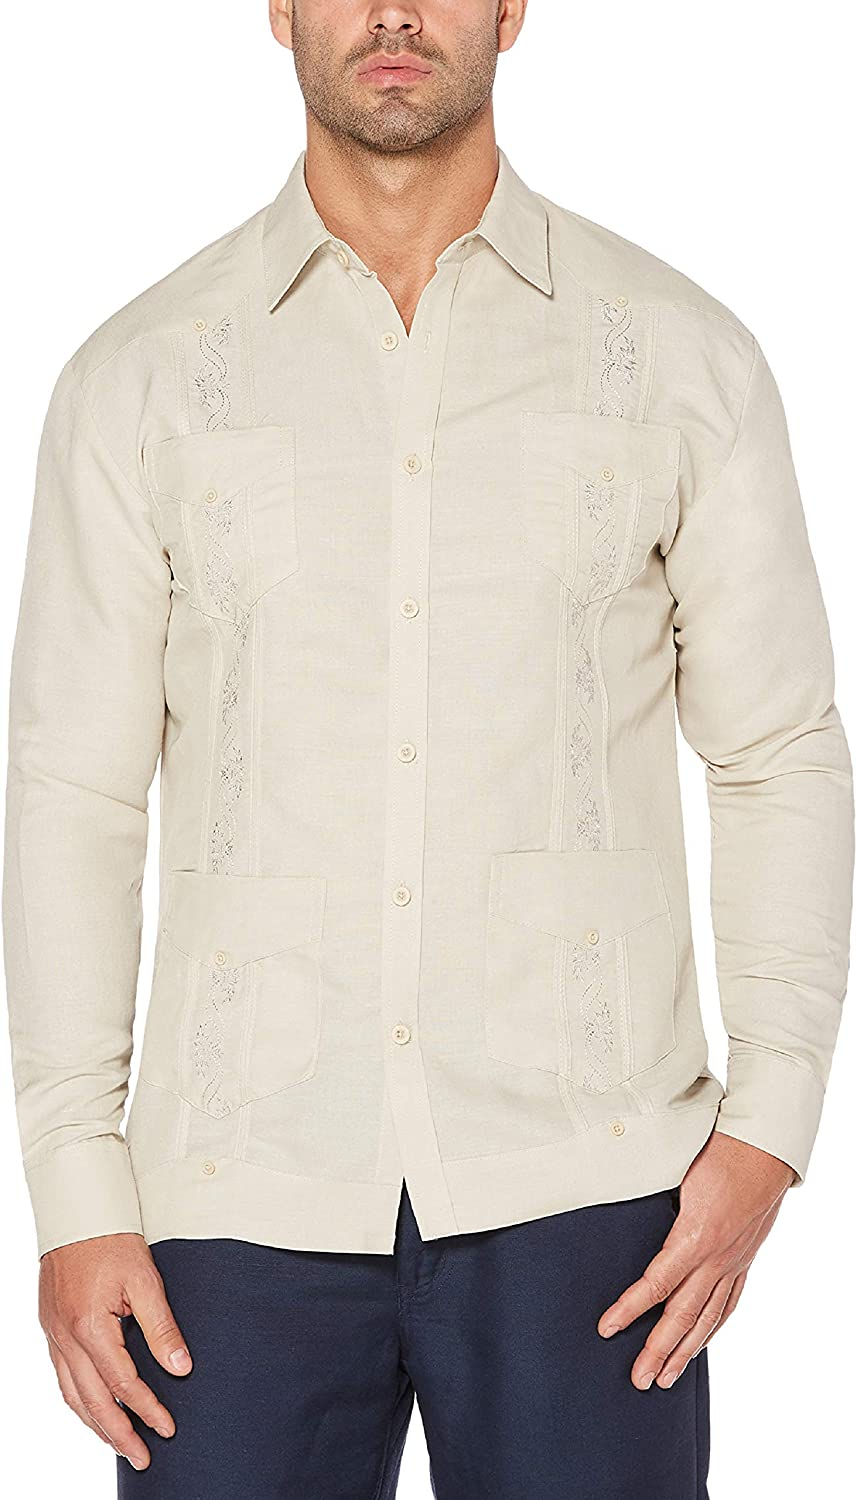 Cubavera Men's Long Sleeve Embroidered Guayabera Shirt